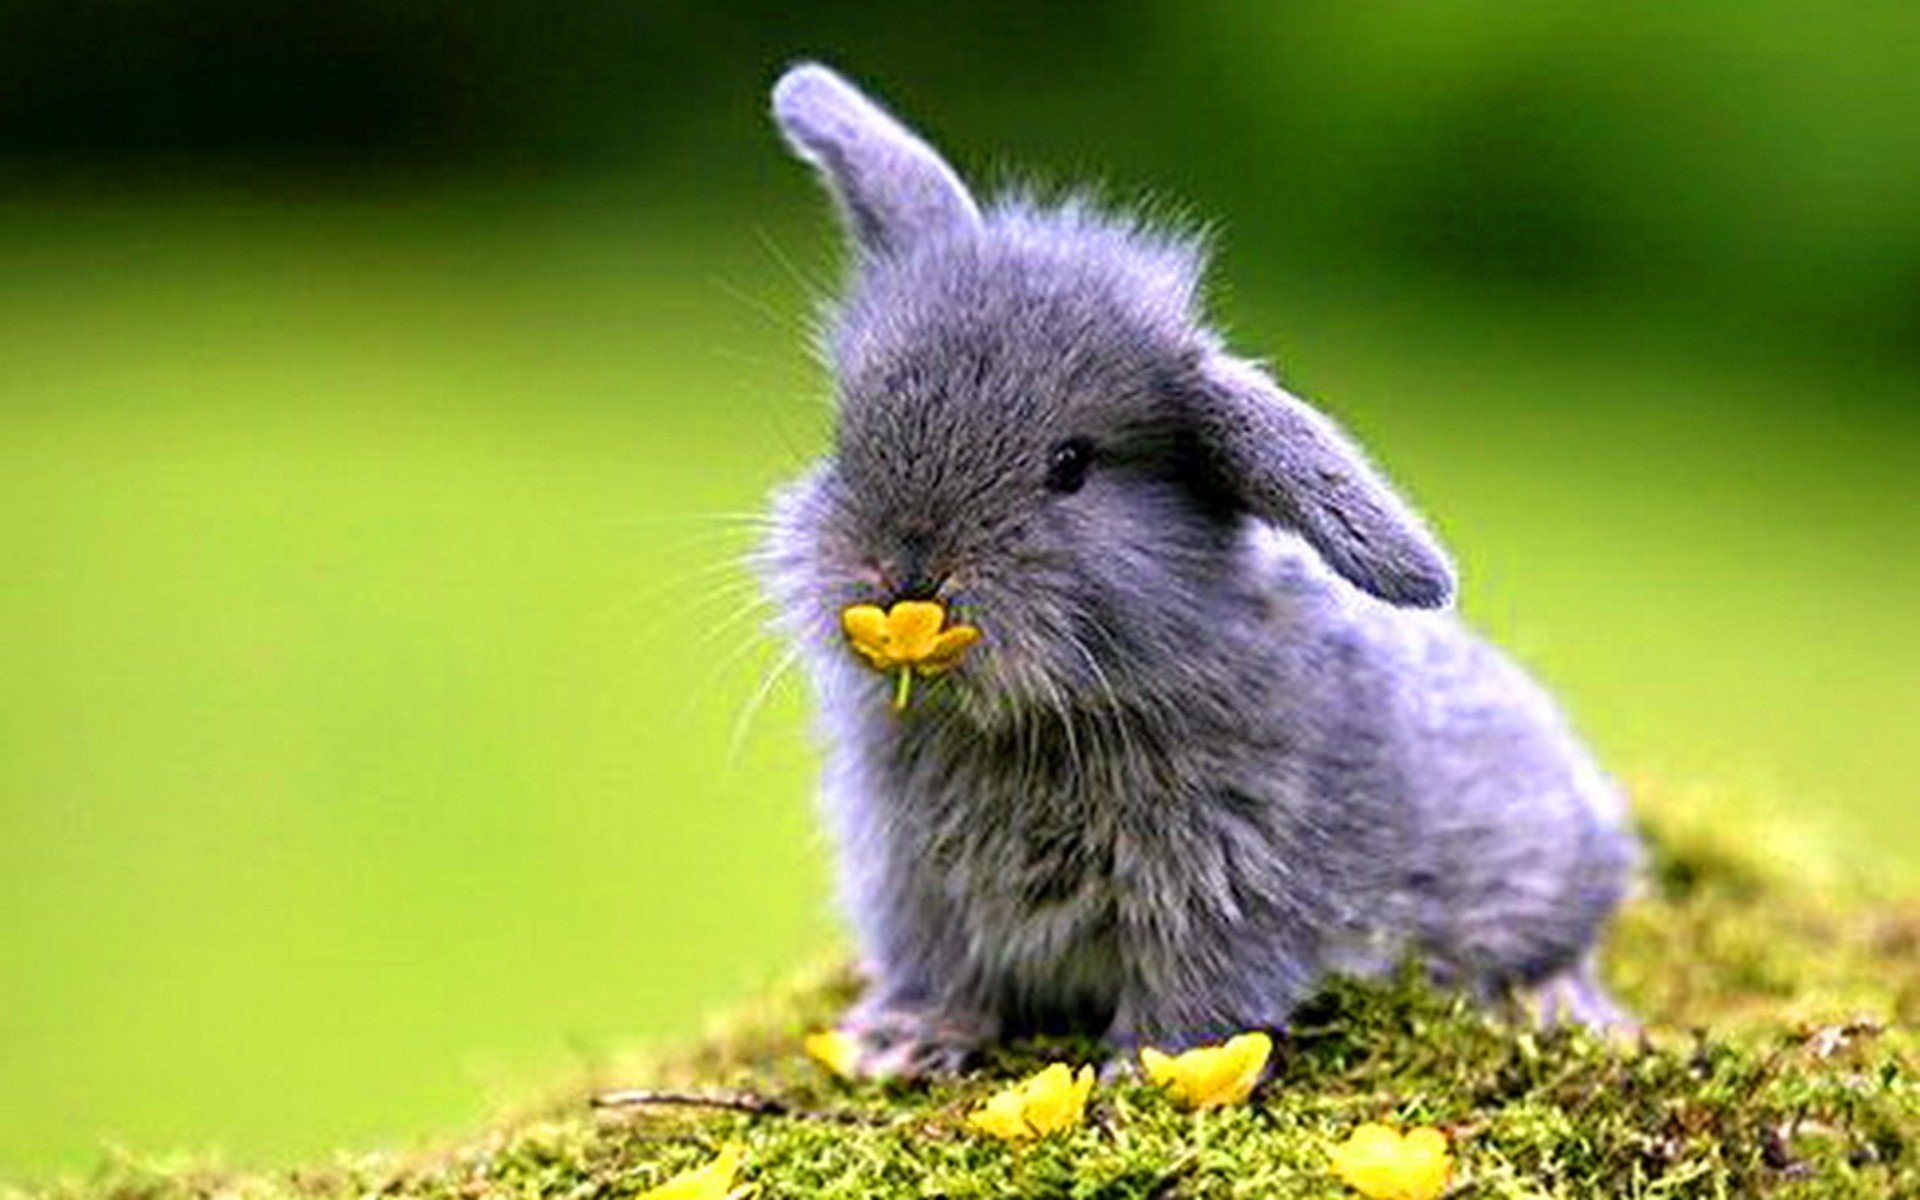 Cute spring animal backgrounds